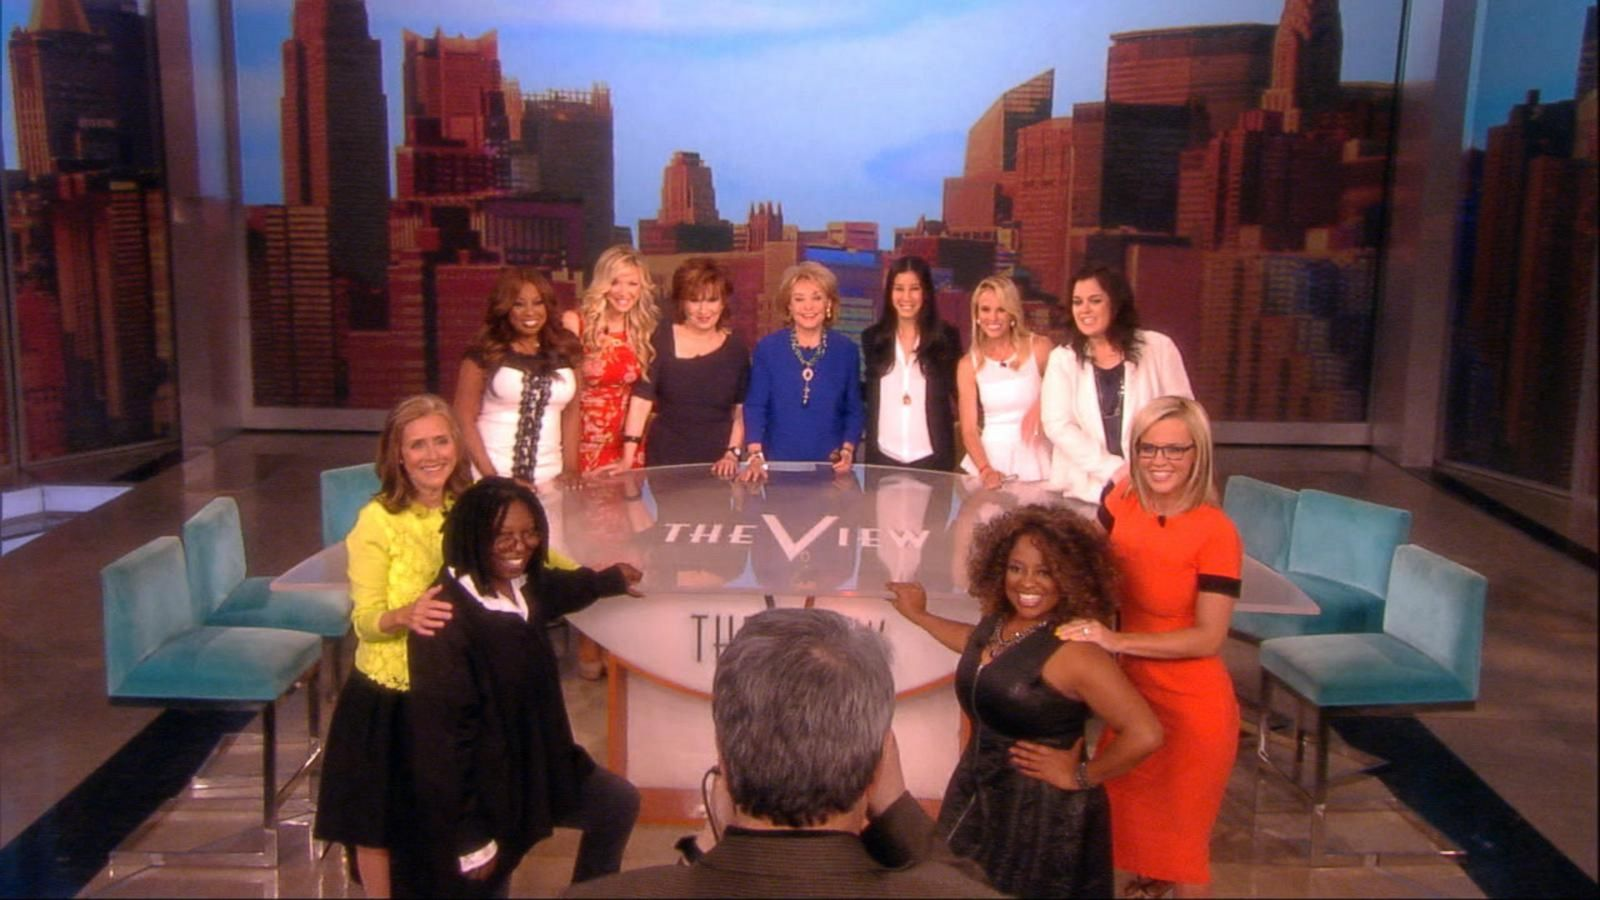 VIDEO: 'The View' Special Part 1: How 'The View' Became a Revolutionary Show